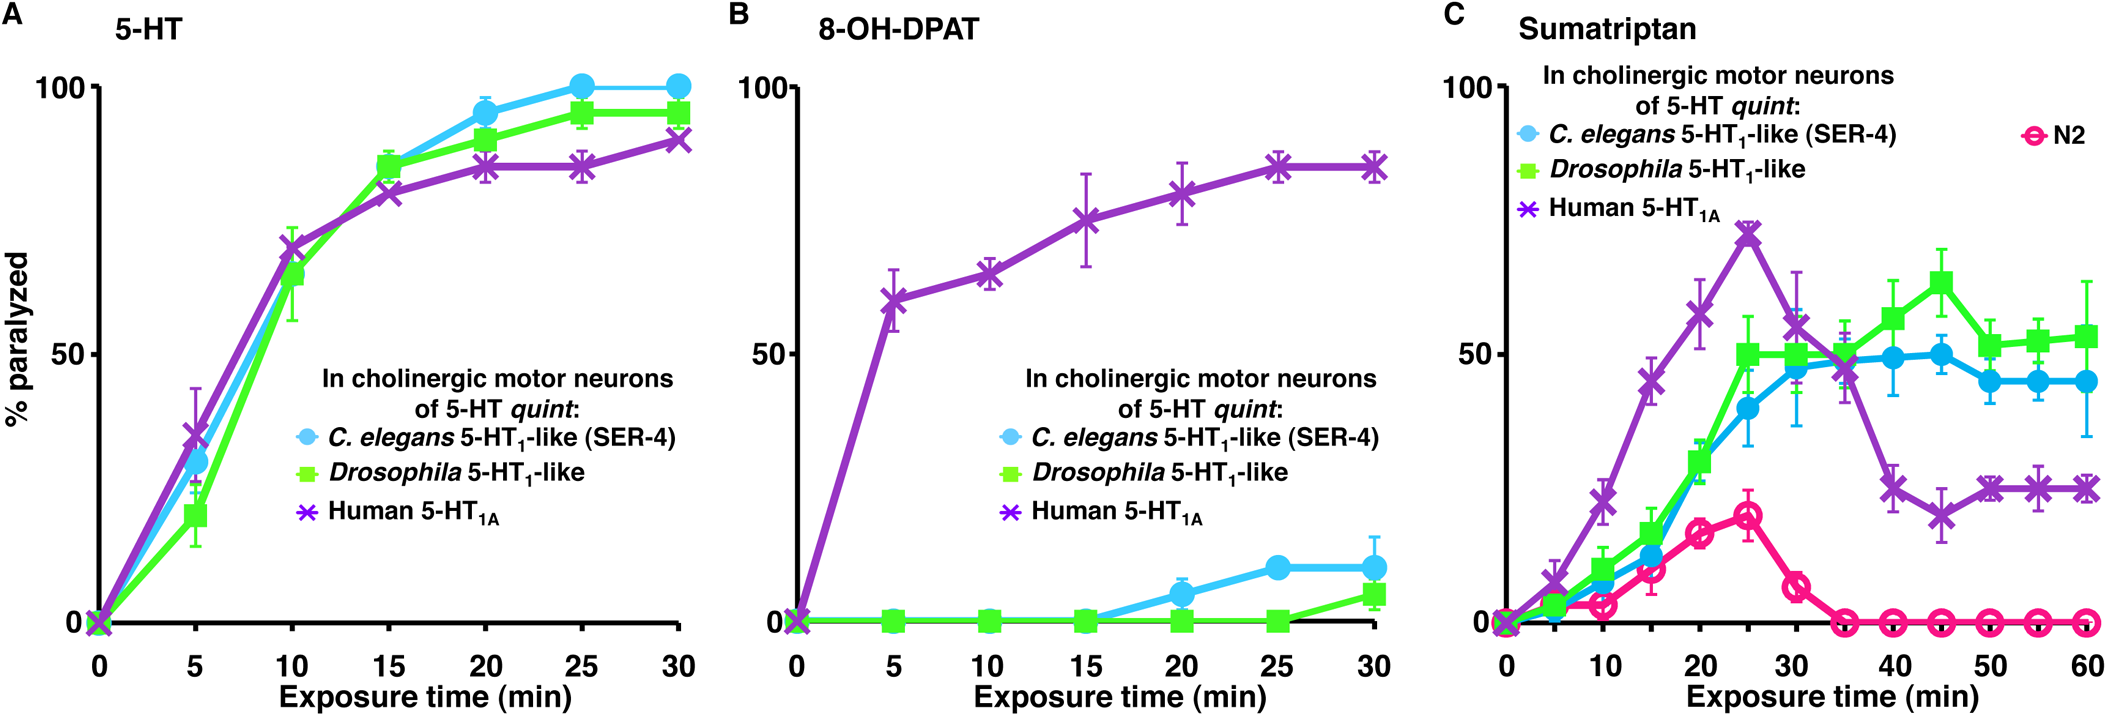 5-HT and 5-HT receptor agonists selectively paralyze <i>C</i>. <i>elegans</i> 5-HT receptor mutant animals expressing nematode, insect or human 5-HT<sub>1</sub>-like receptors in the cholinergic motor neurons.